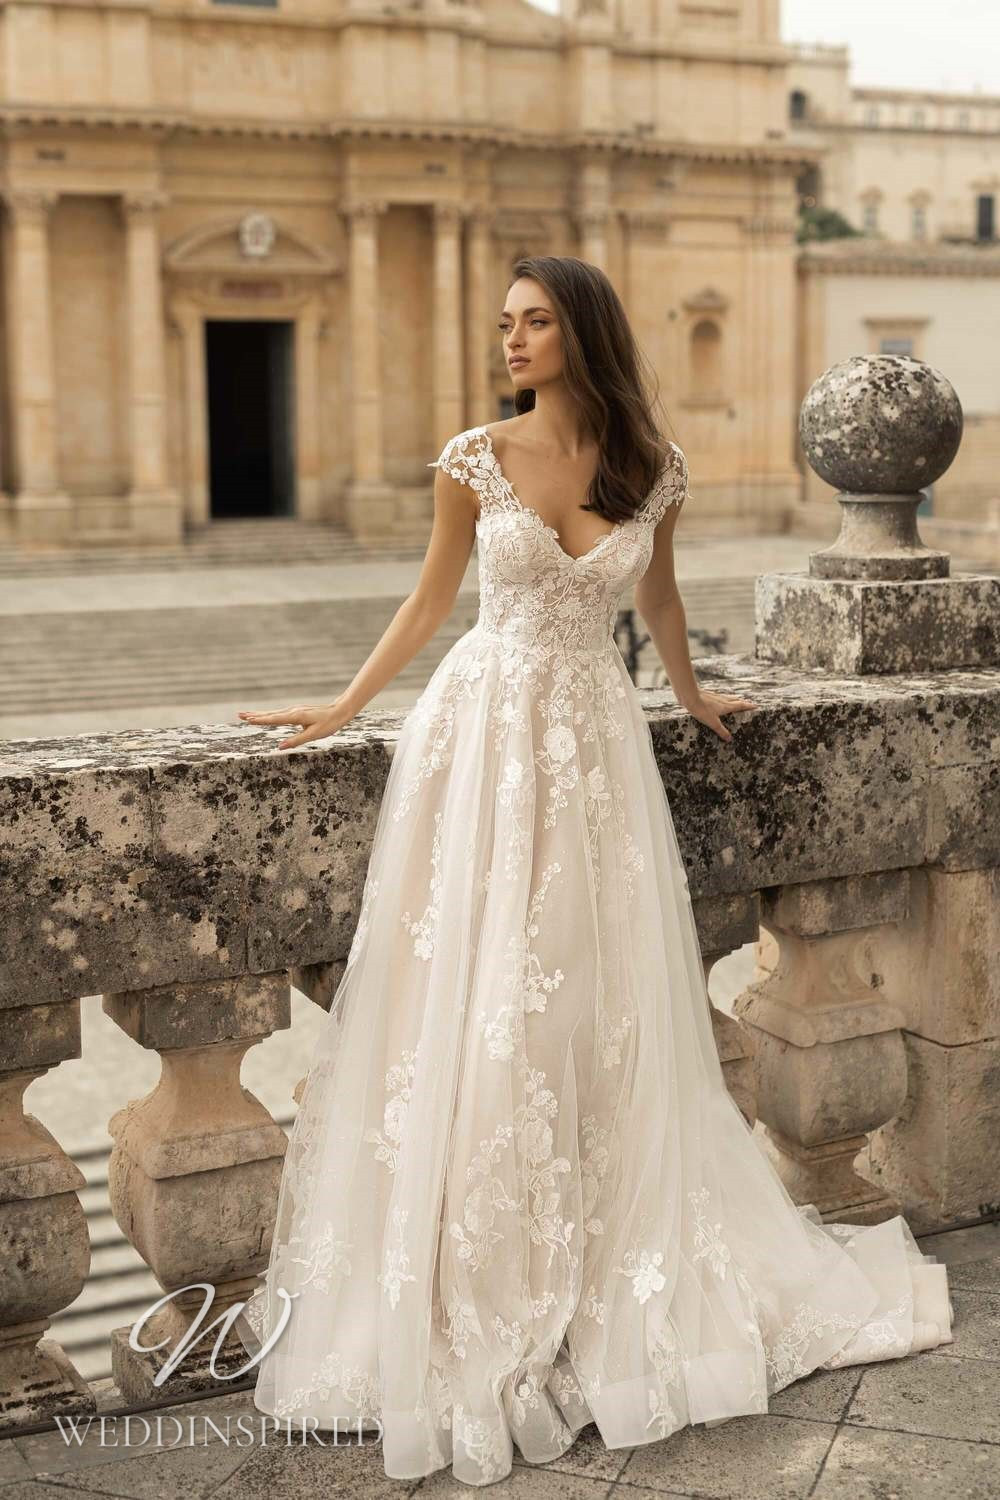 A Lussano 2021 lace and tulle A-line wedding dress with a v neck